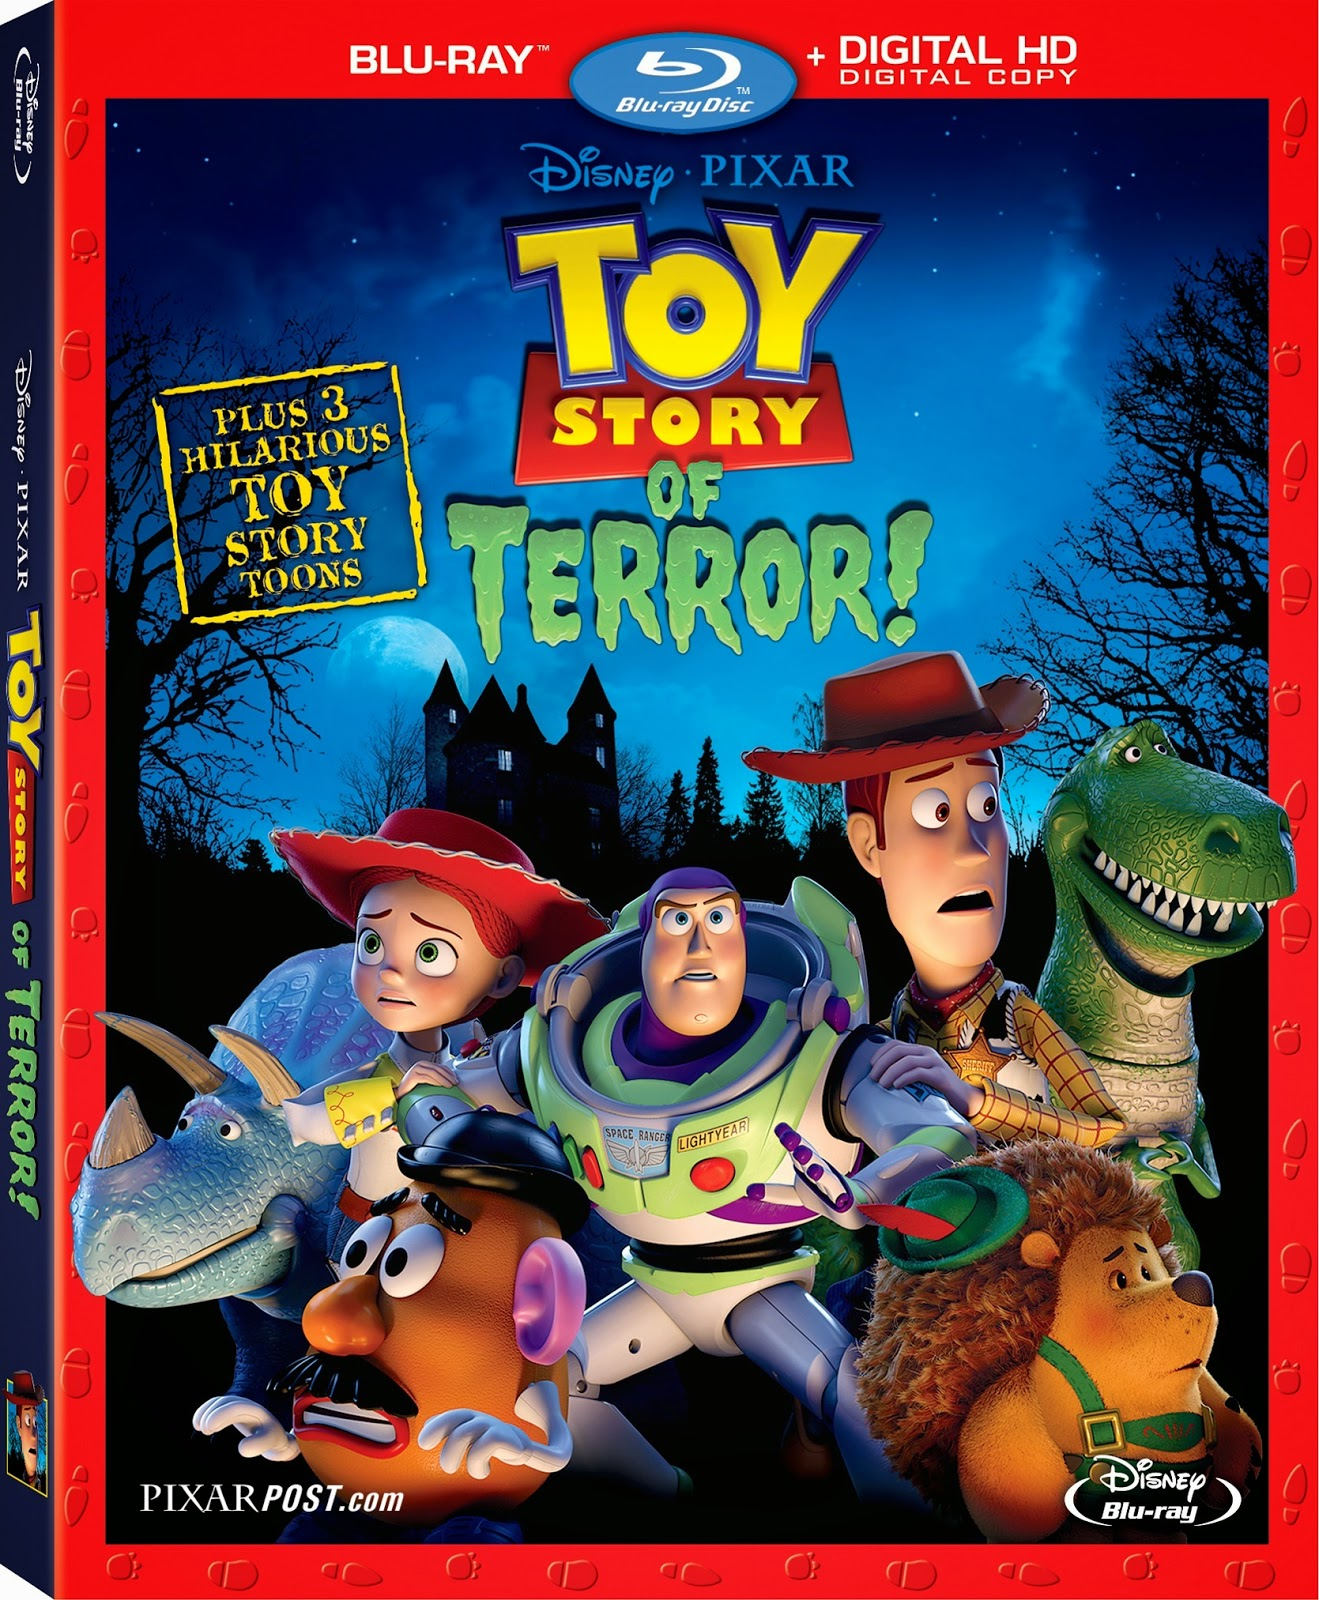 Toy story of terror 1 2 3 buzz lightyear of star command for sale - Toy Story Of Terror On Blu Ray Dvd August 19 2014 Along With Partysaurus Rex Hawaiian Vacation Small Fry Updated